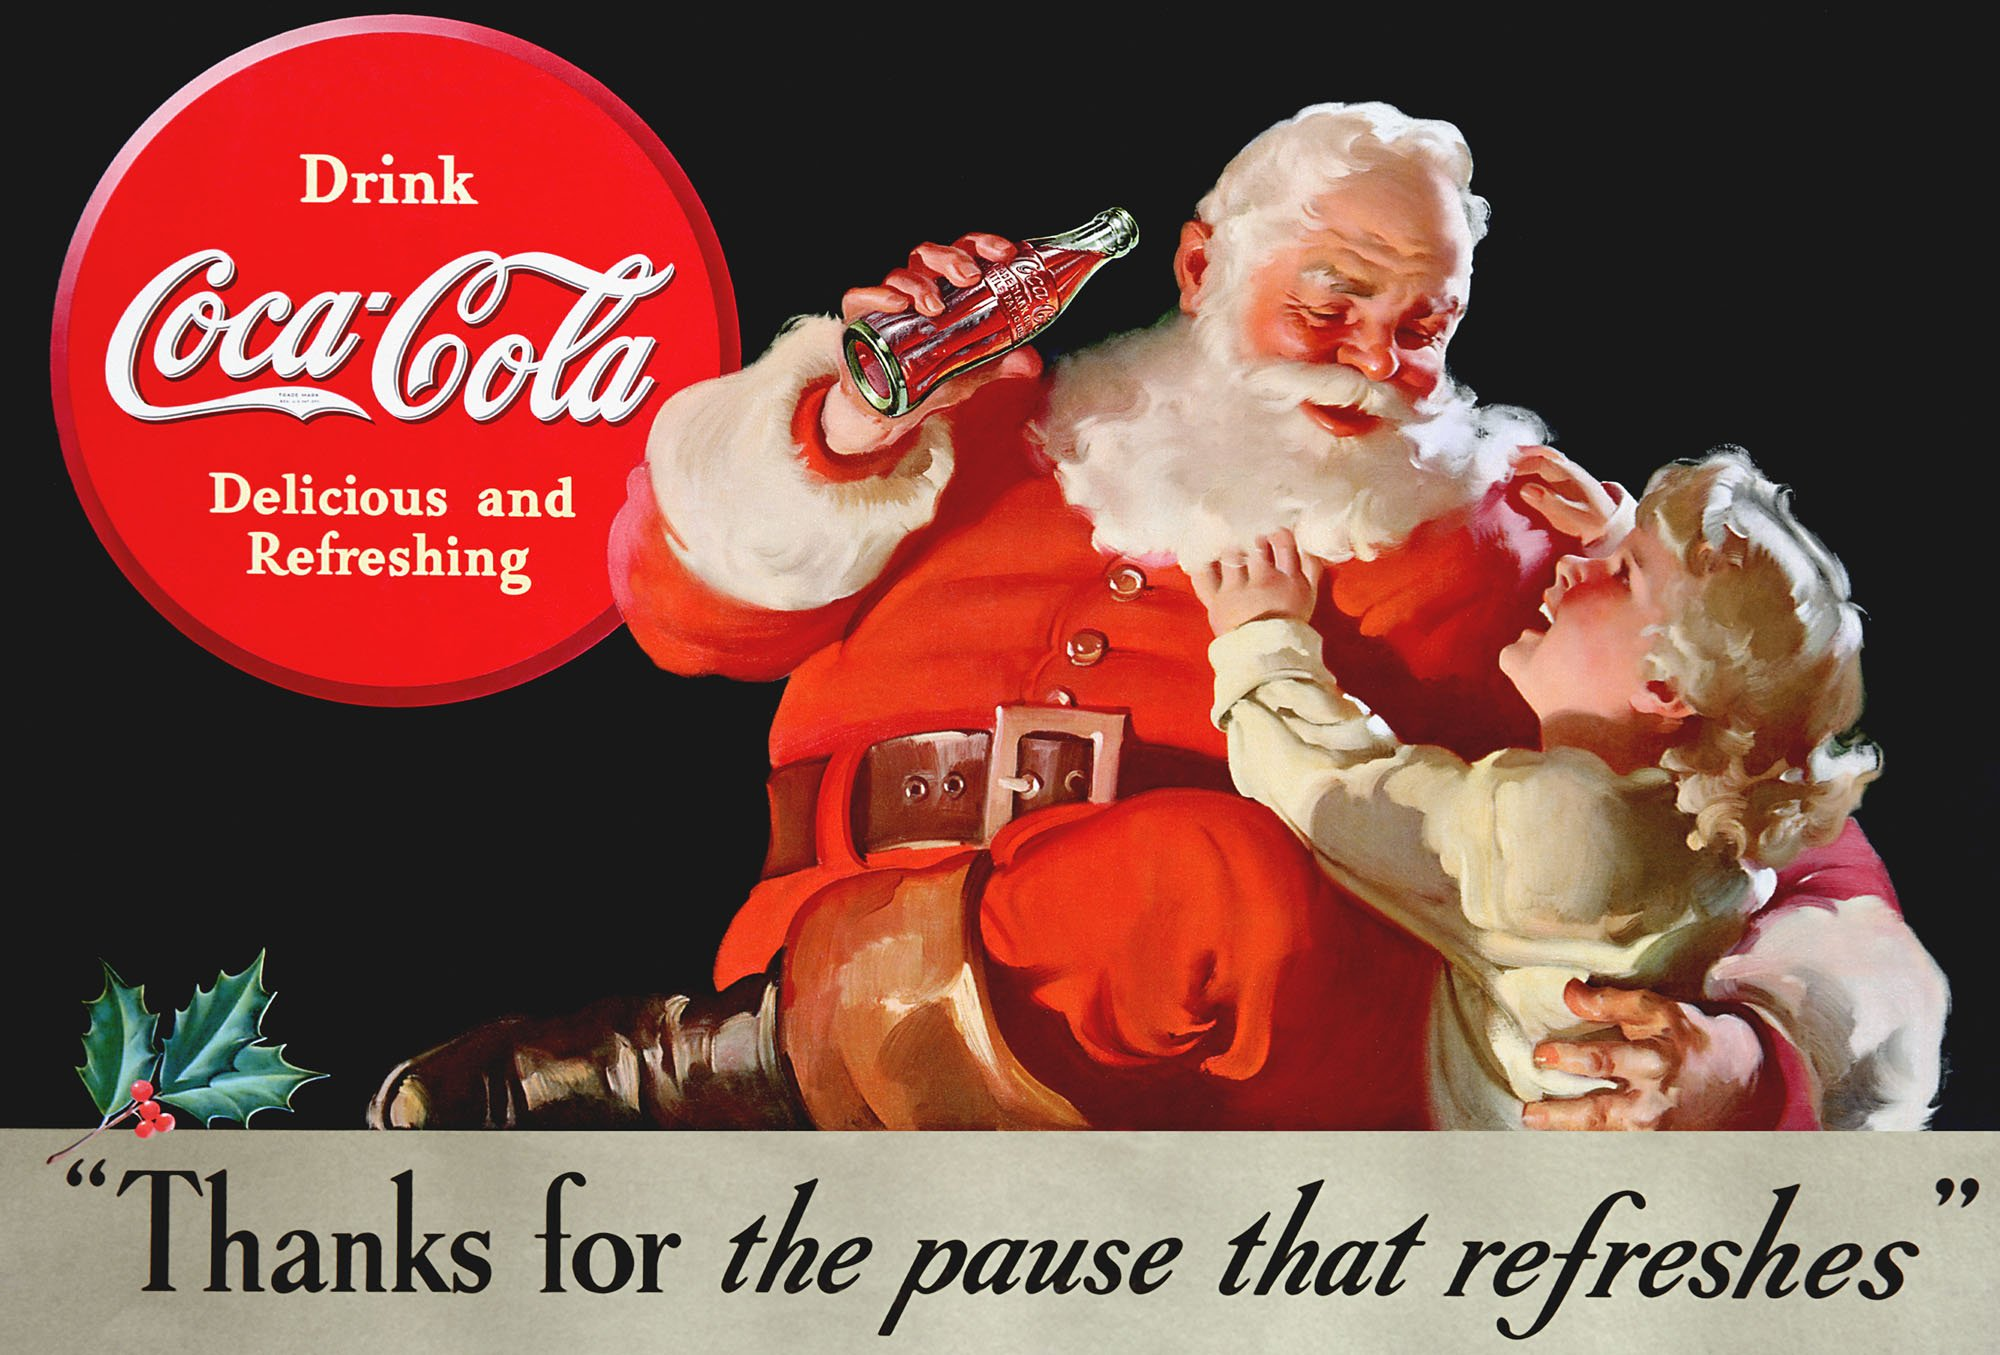 e11 10 Things You Never Knew About Coca-Cola